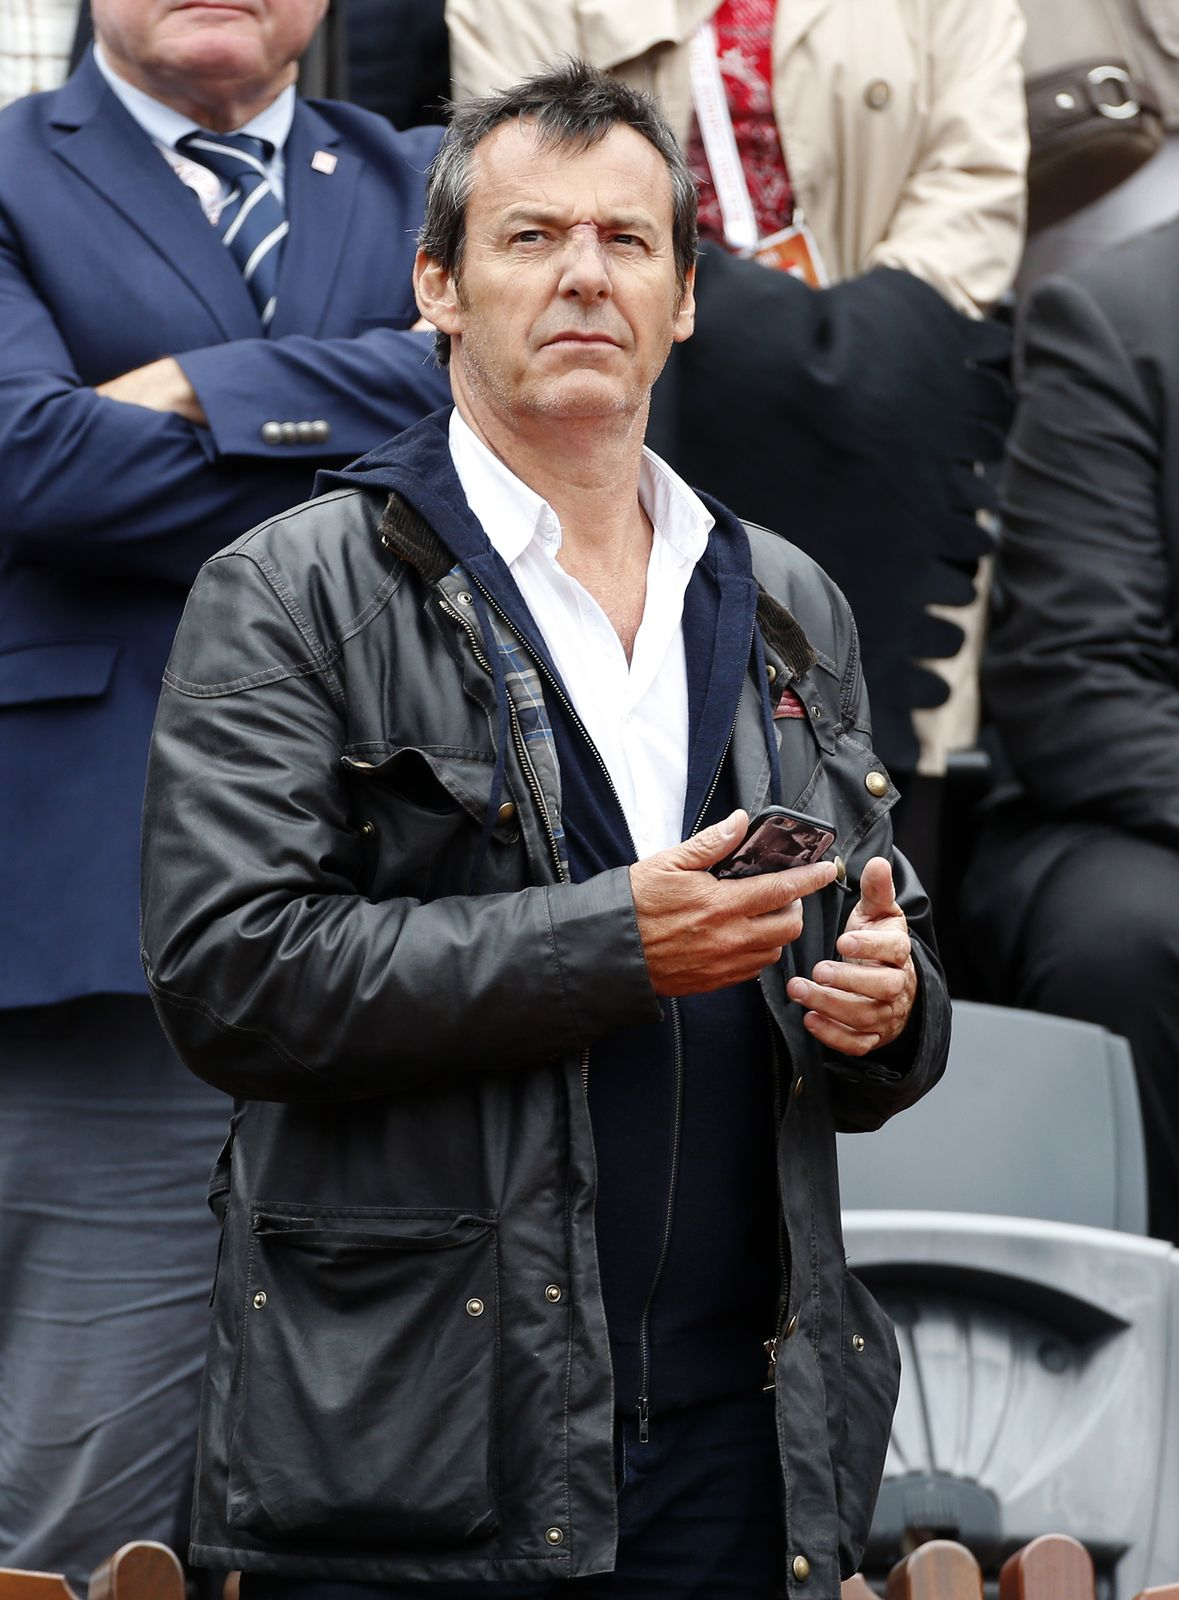 Jean-Luc Reichmann assiste à la huitième journée de Roland Garros au stade de Paris, en France. | Photo : Getty Images